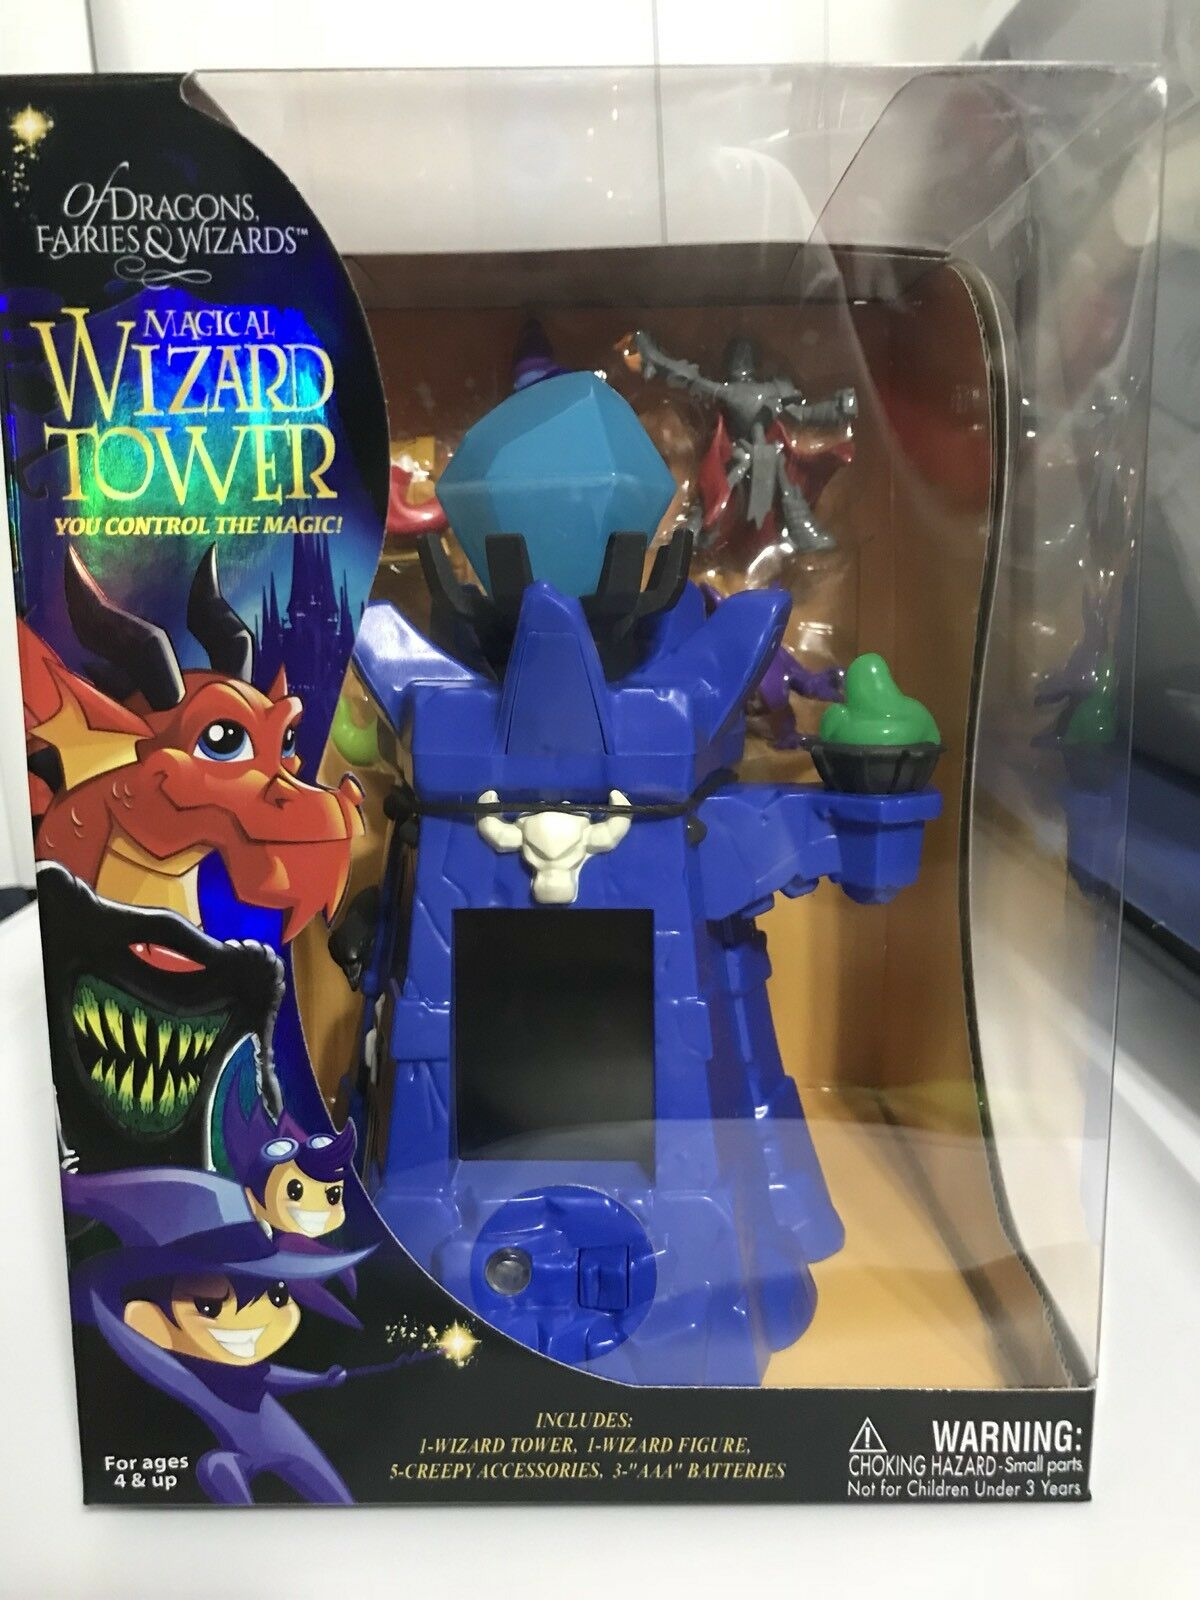 Of Dragons, Faries & Wizards Magical Wizards Blau Tower Playset New